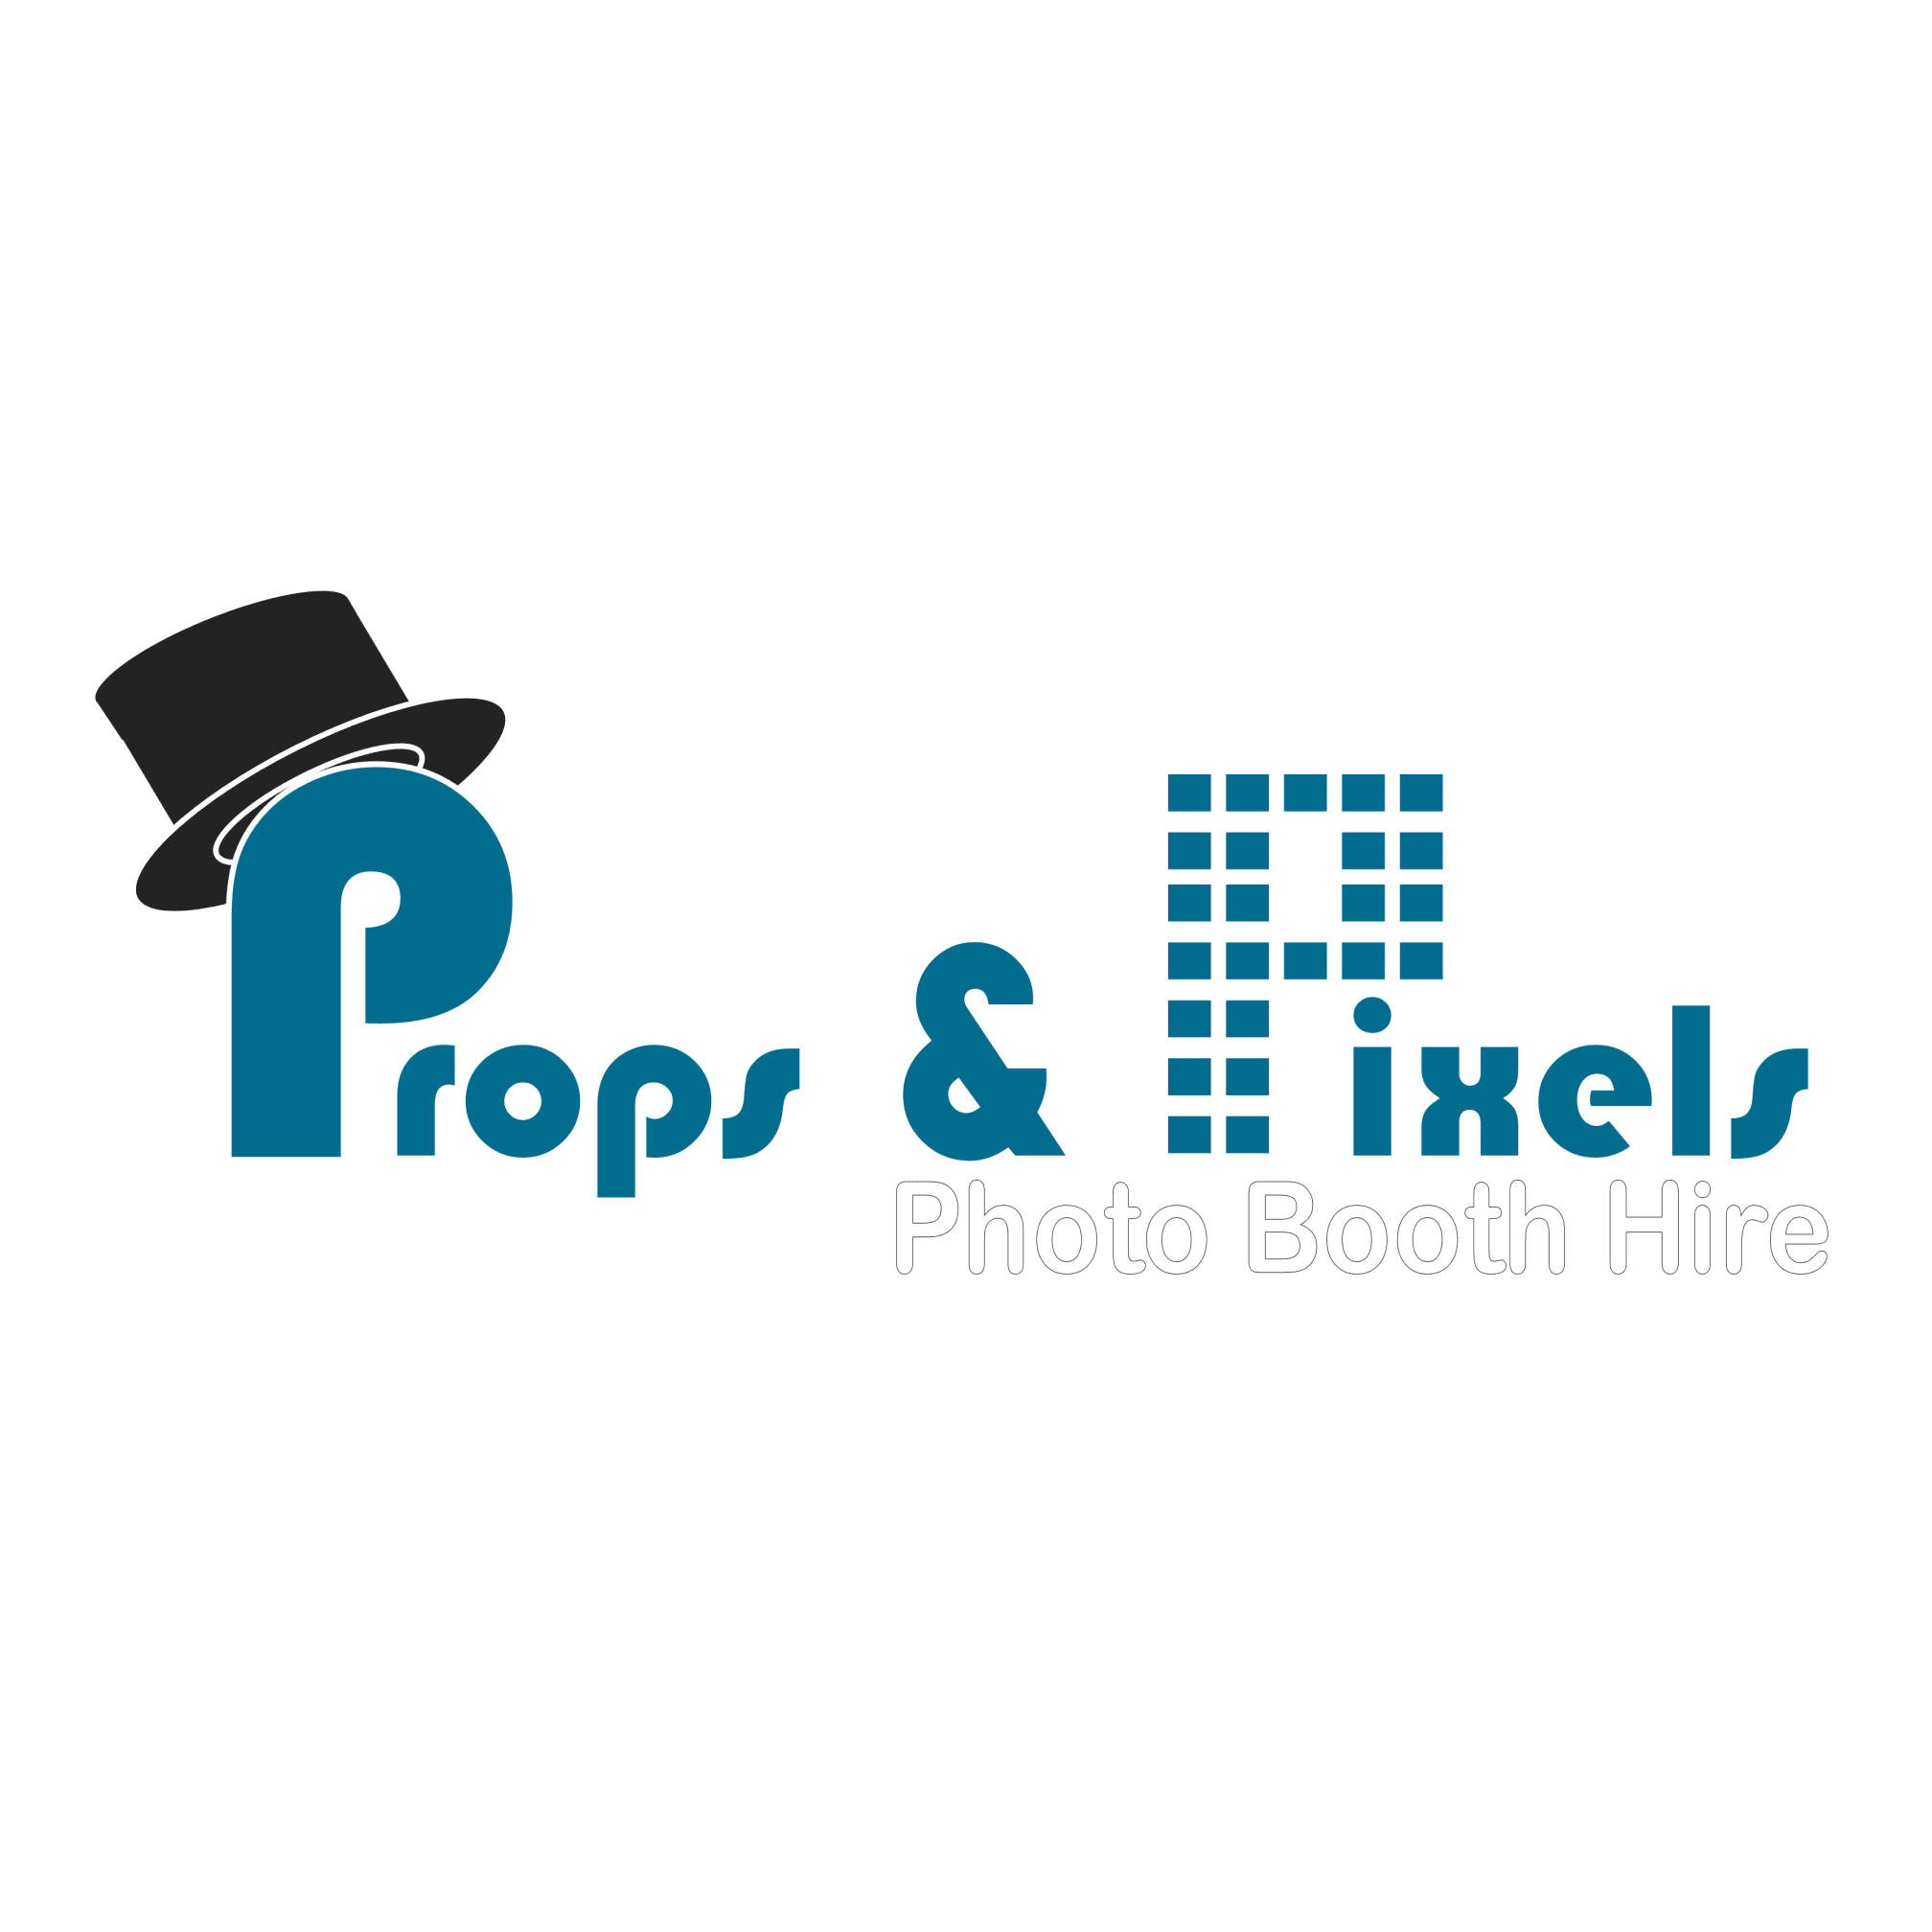 Props & Pixels Photo Booth Hire - Pontefract, West Yorkshire WF7 5FA - 07792 928962 | ShowMeLocal.com